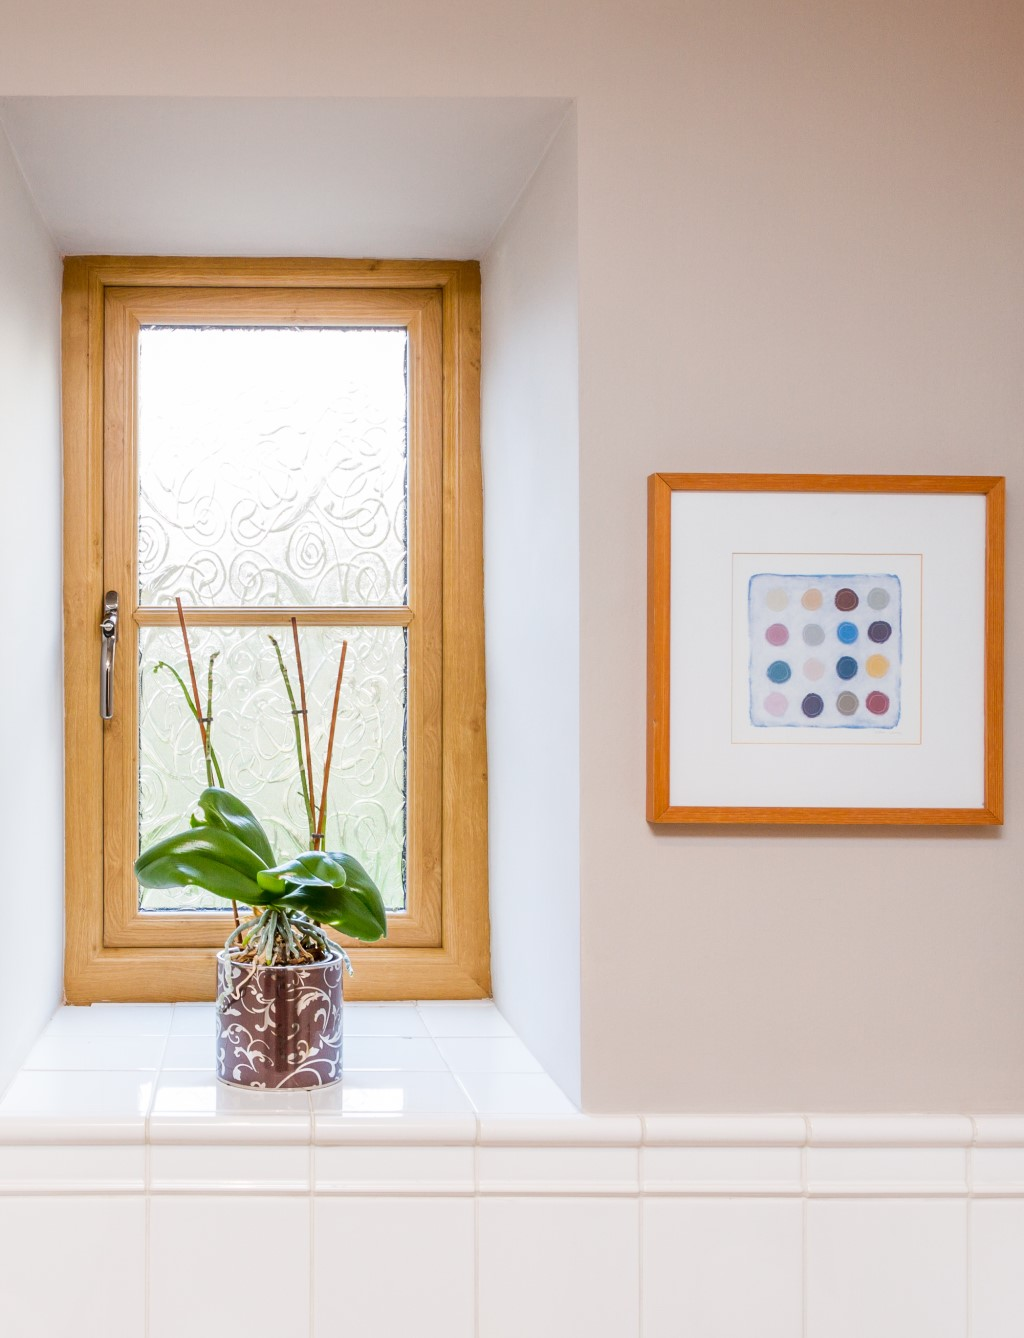 Privacy Glass, Texture Glass or Privacy Glass